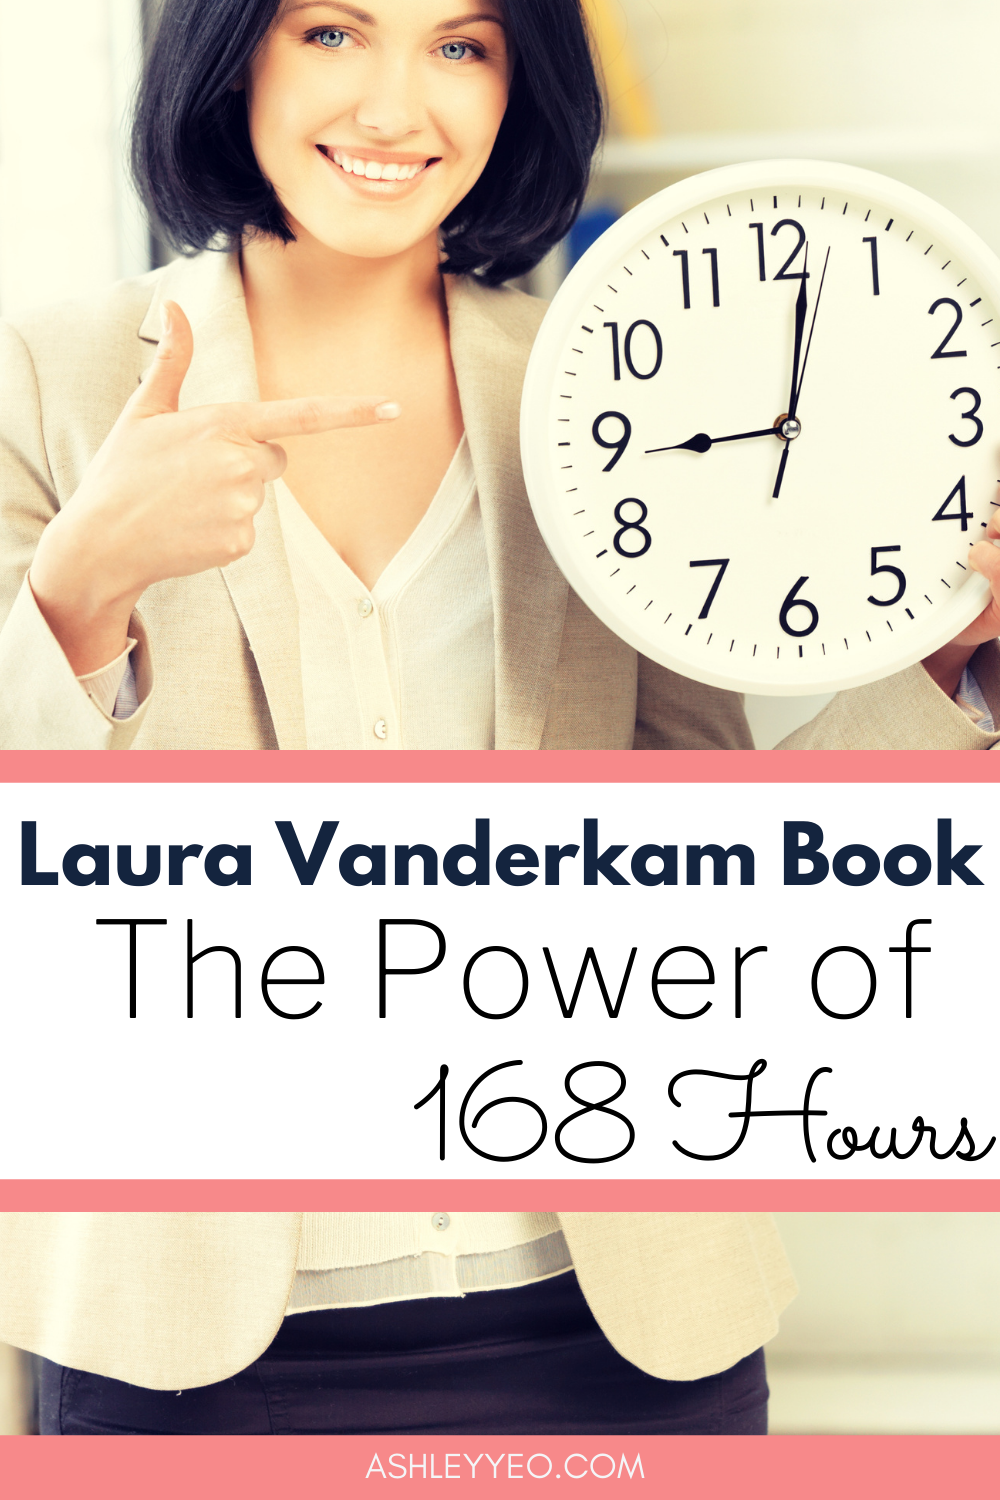 Laura Vanderkam Book - The Power of 168 Hours